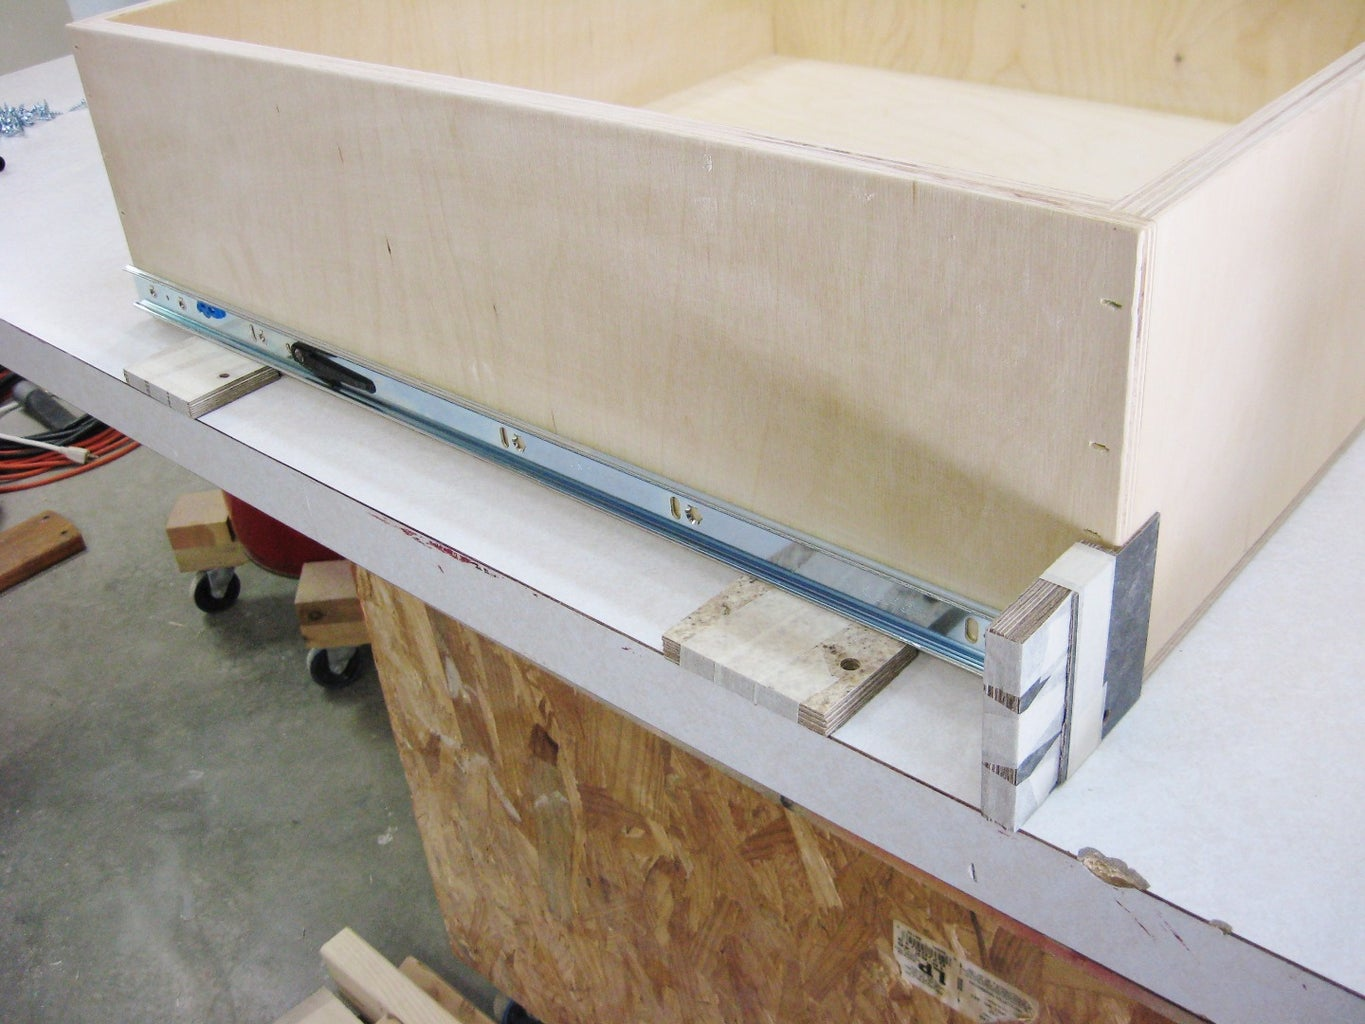 Install Drawer Guides on Drawers